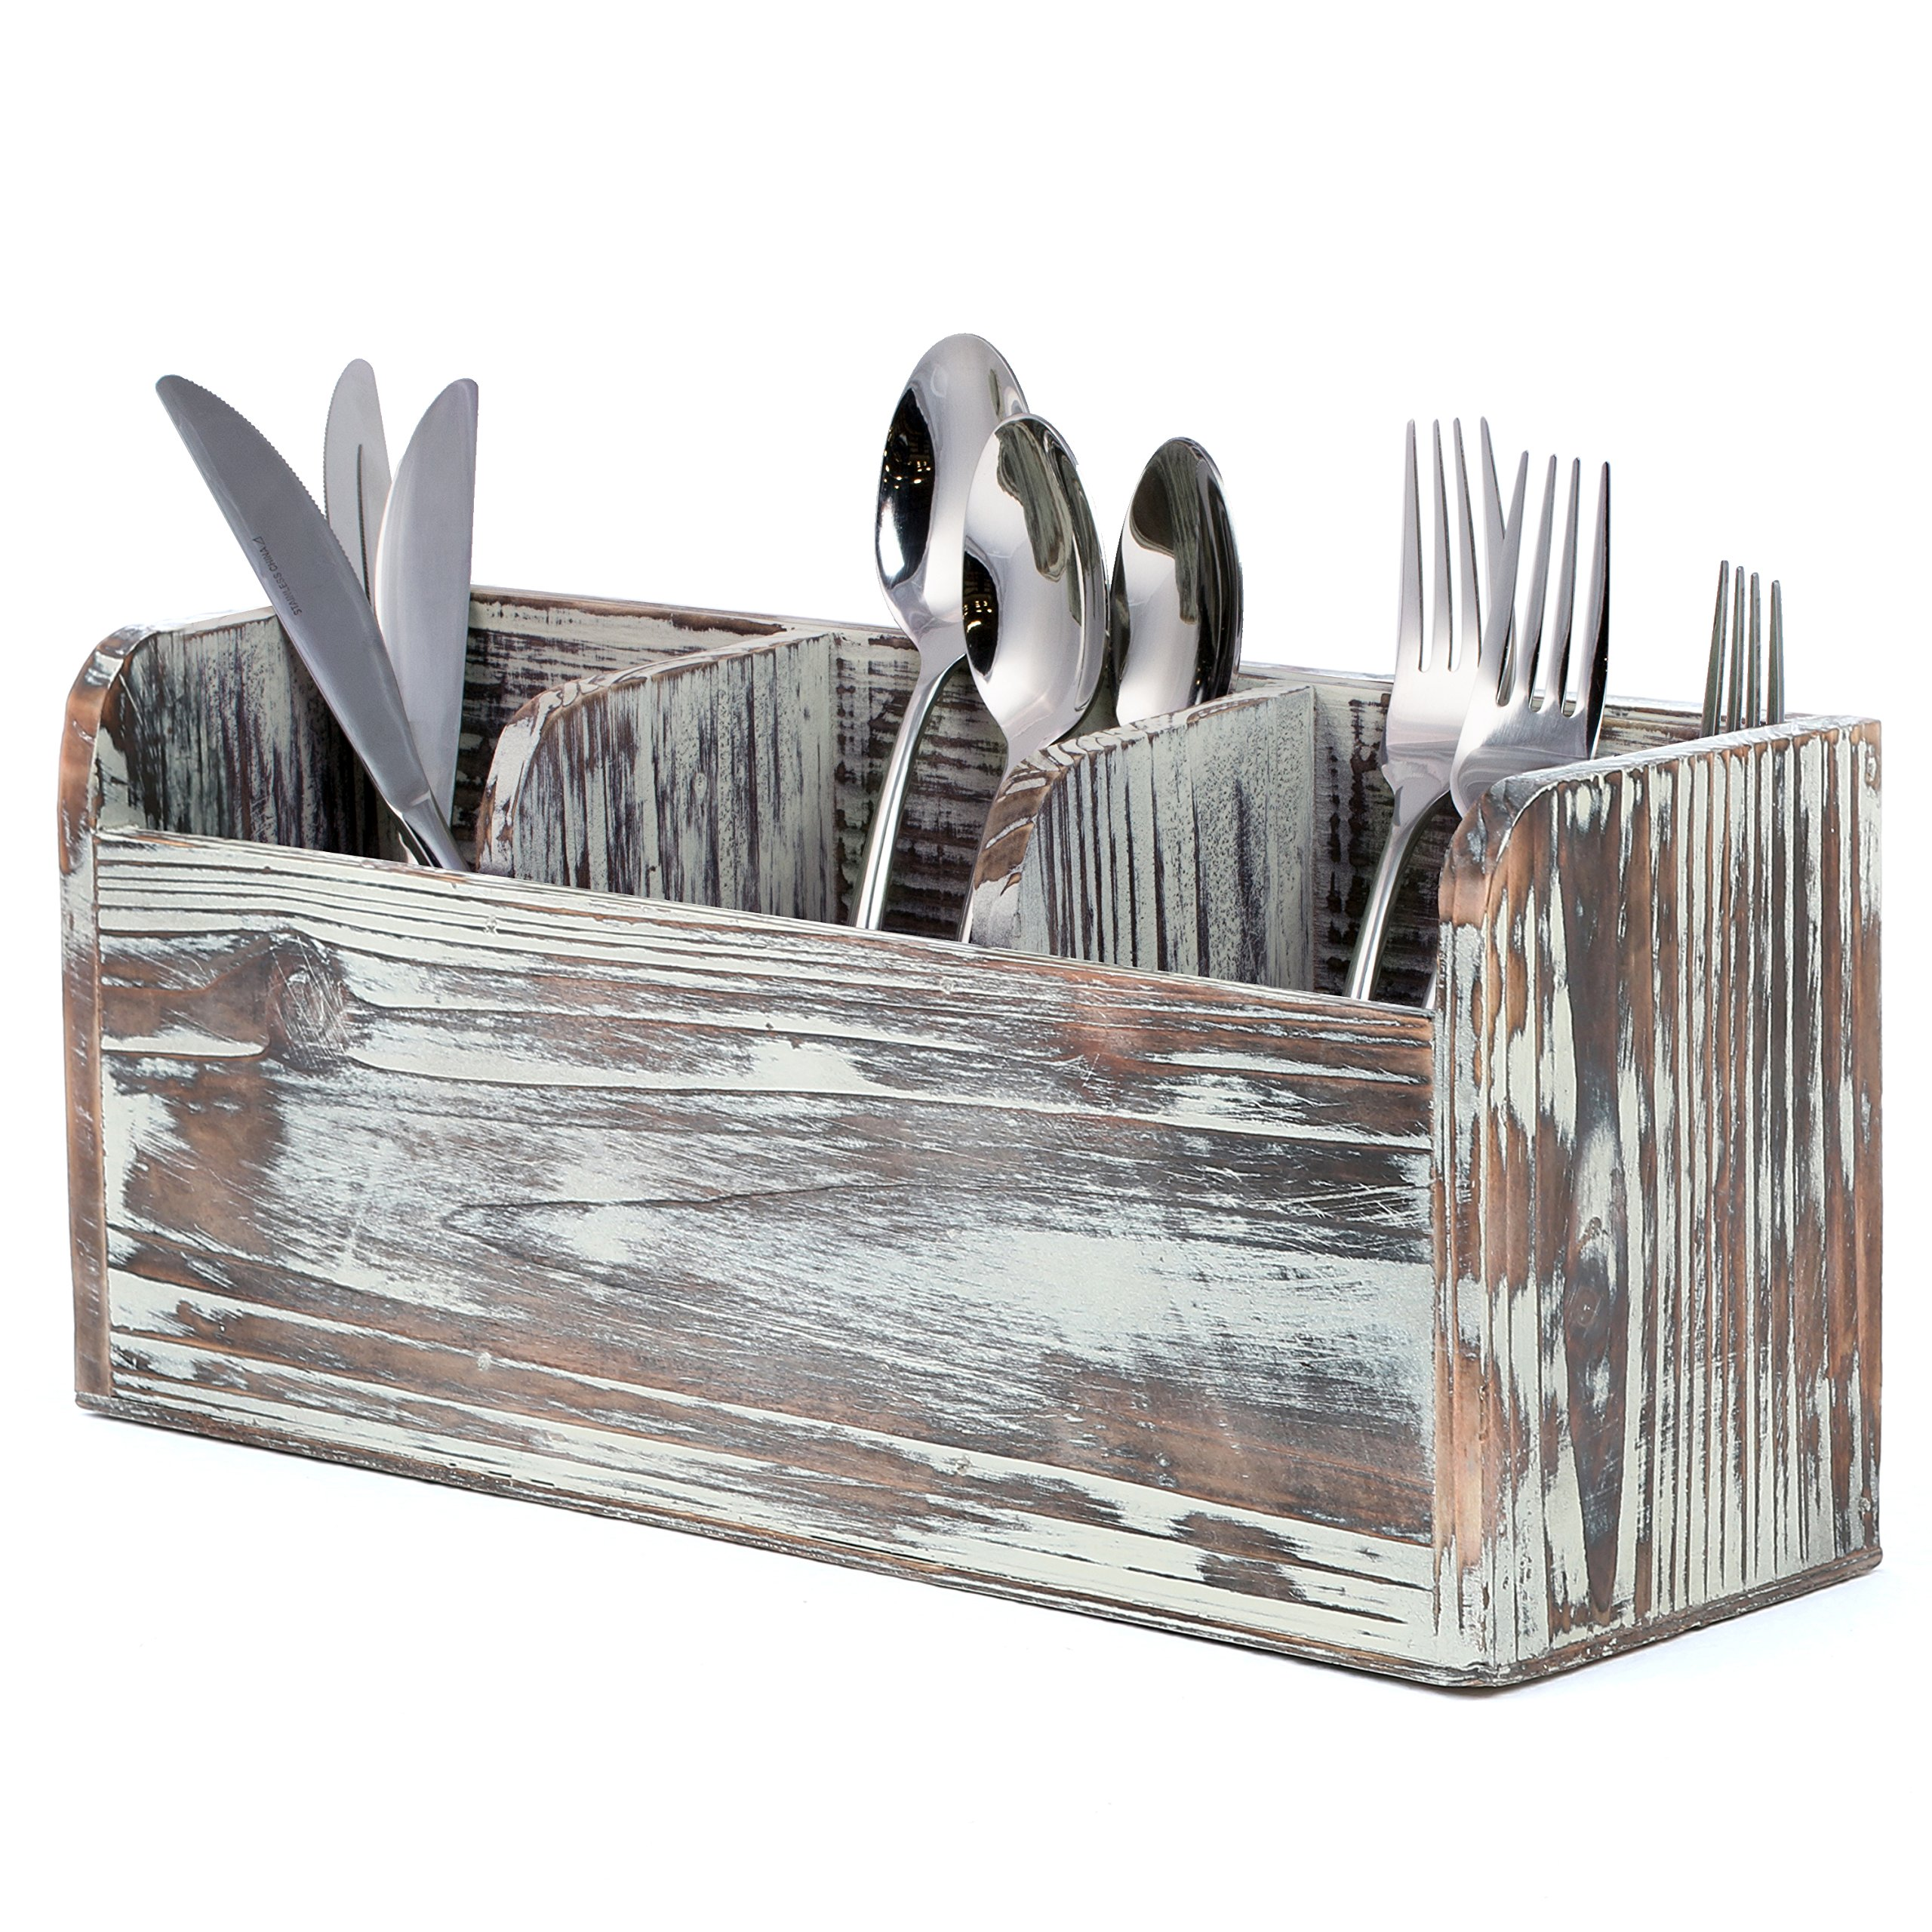 3 Compartment Rustic Torched Wood Utensil Holder, Flatware Caddy and Organizer Tray